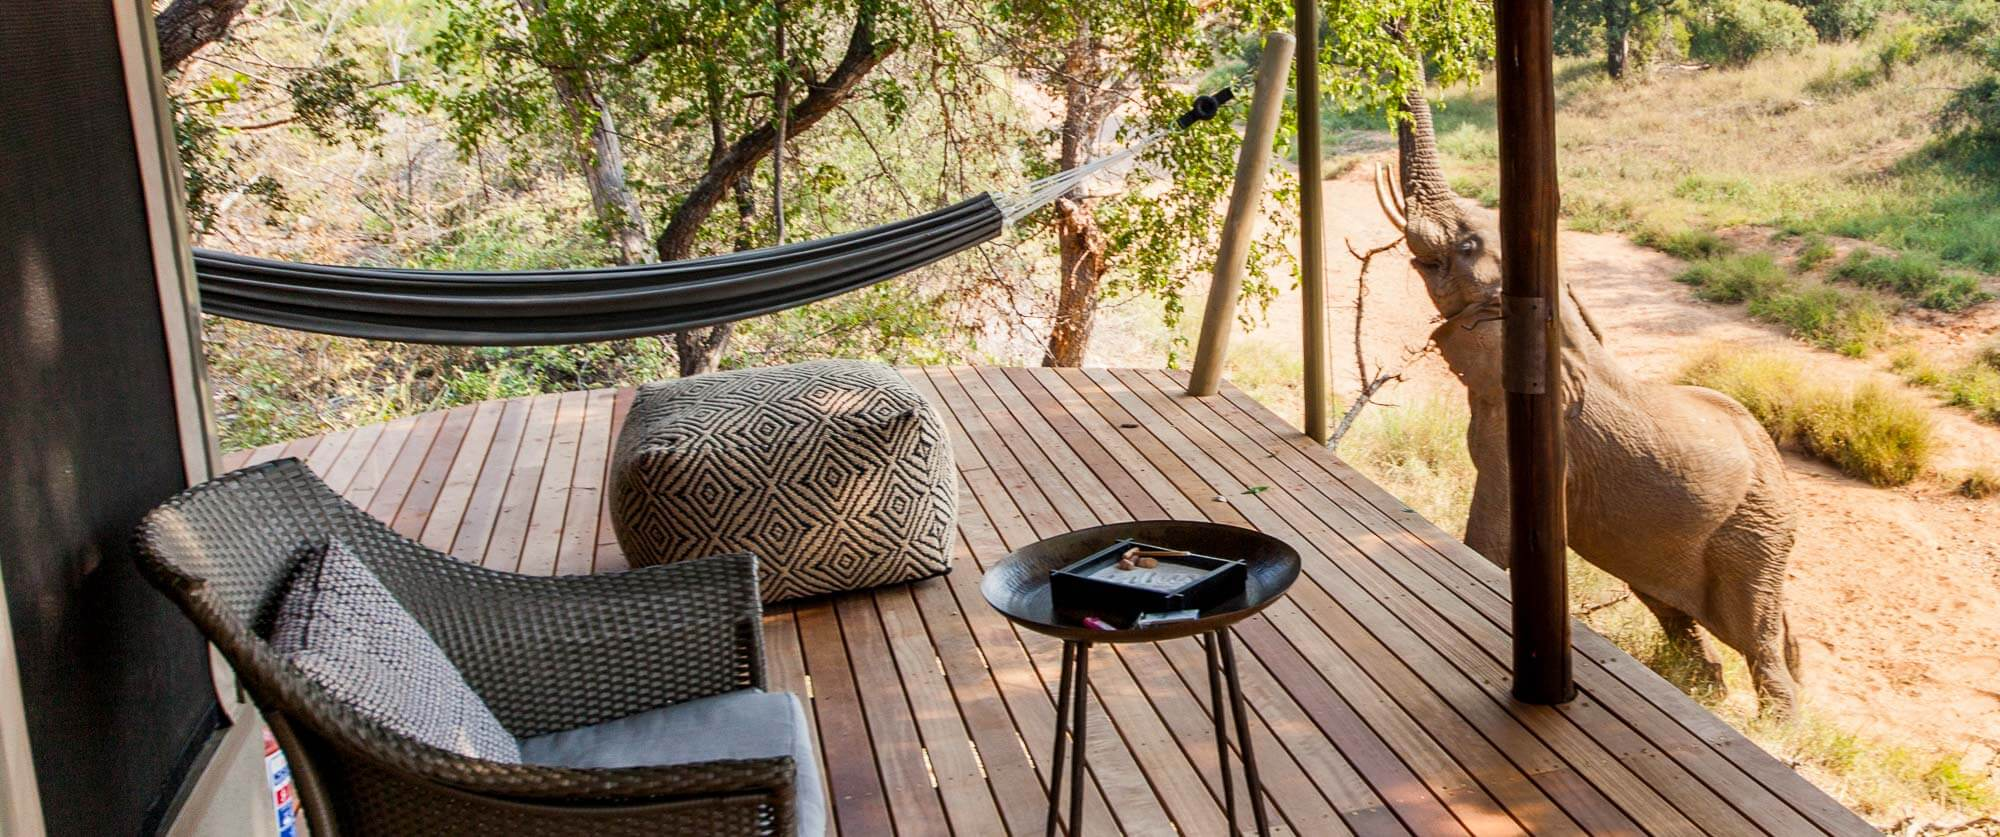 Private Deck at Garonga Safari Camp - Kruger Safari, City, and Winelands Vacation